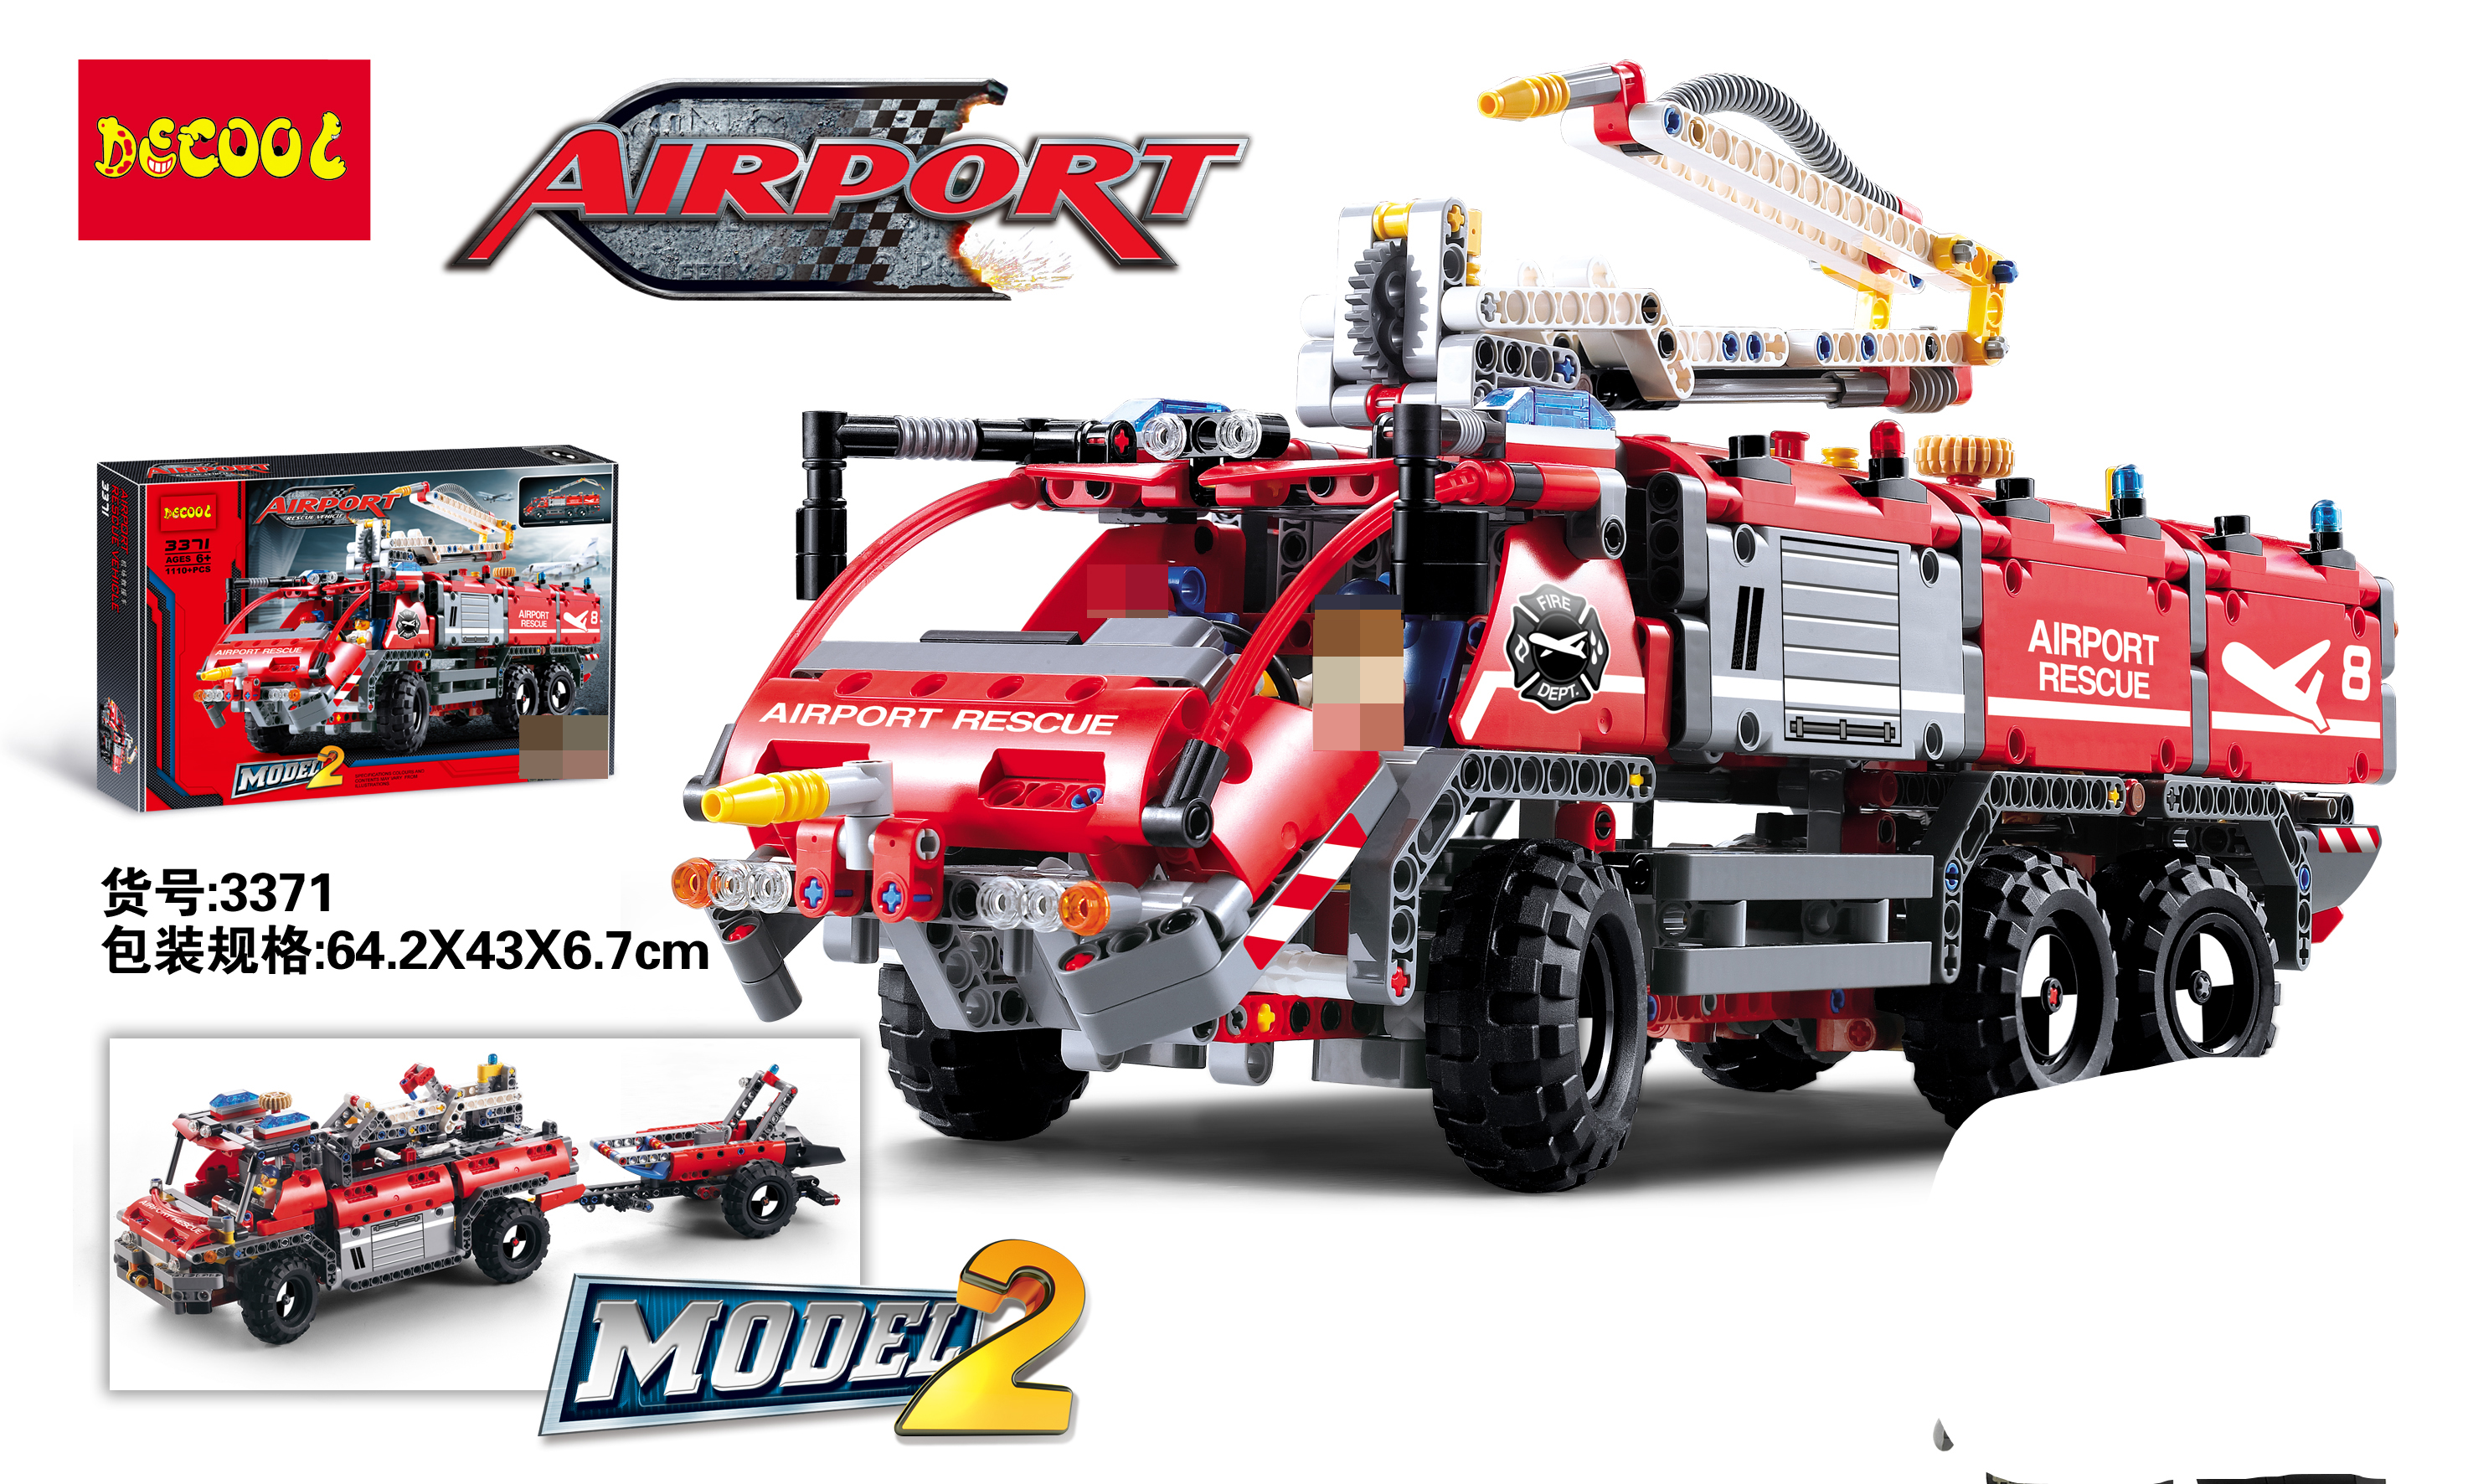 Airport Rescue Vehicle DECOOL TECHNIC compatible legoly 42068 firefighter Building Blocks bricks toys for children City